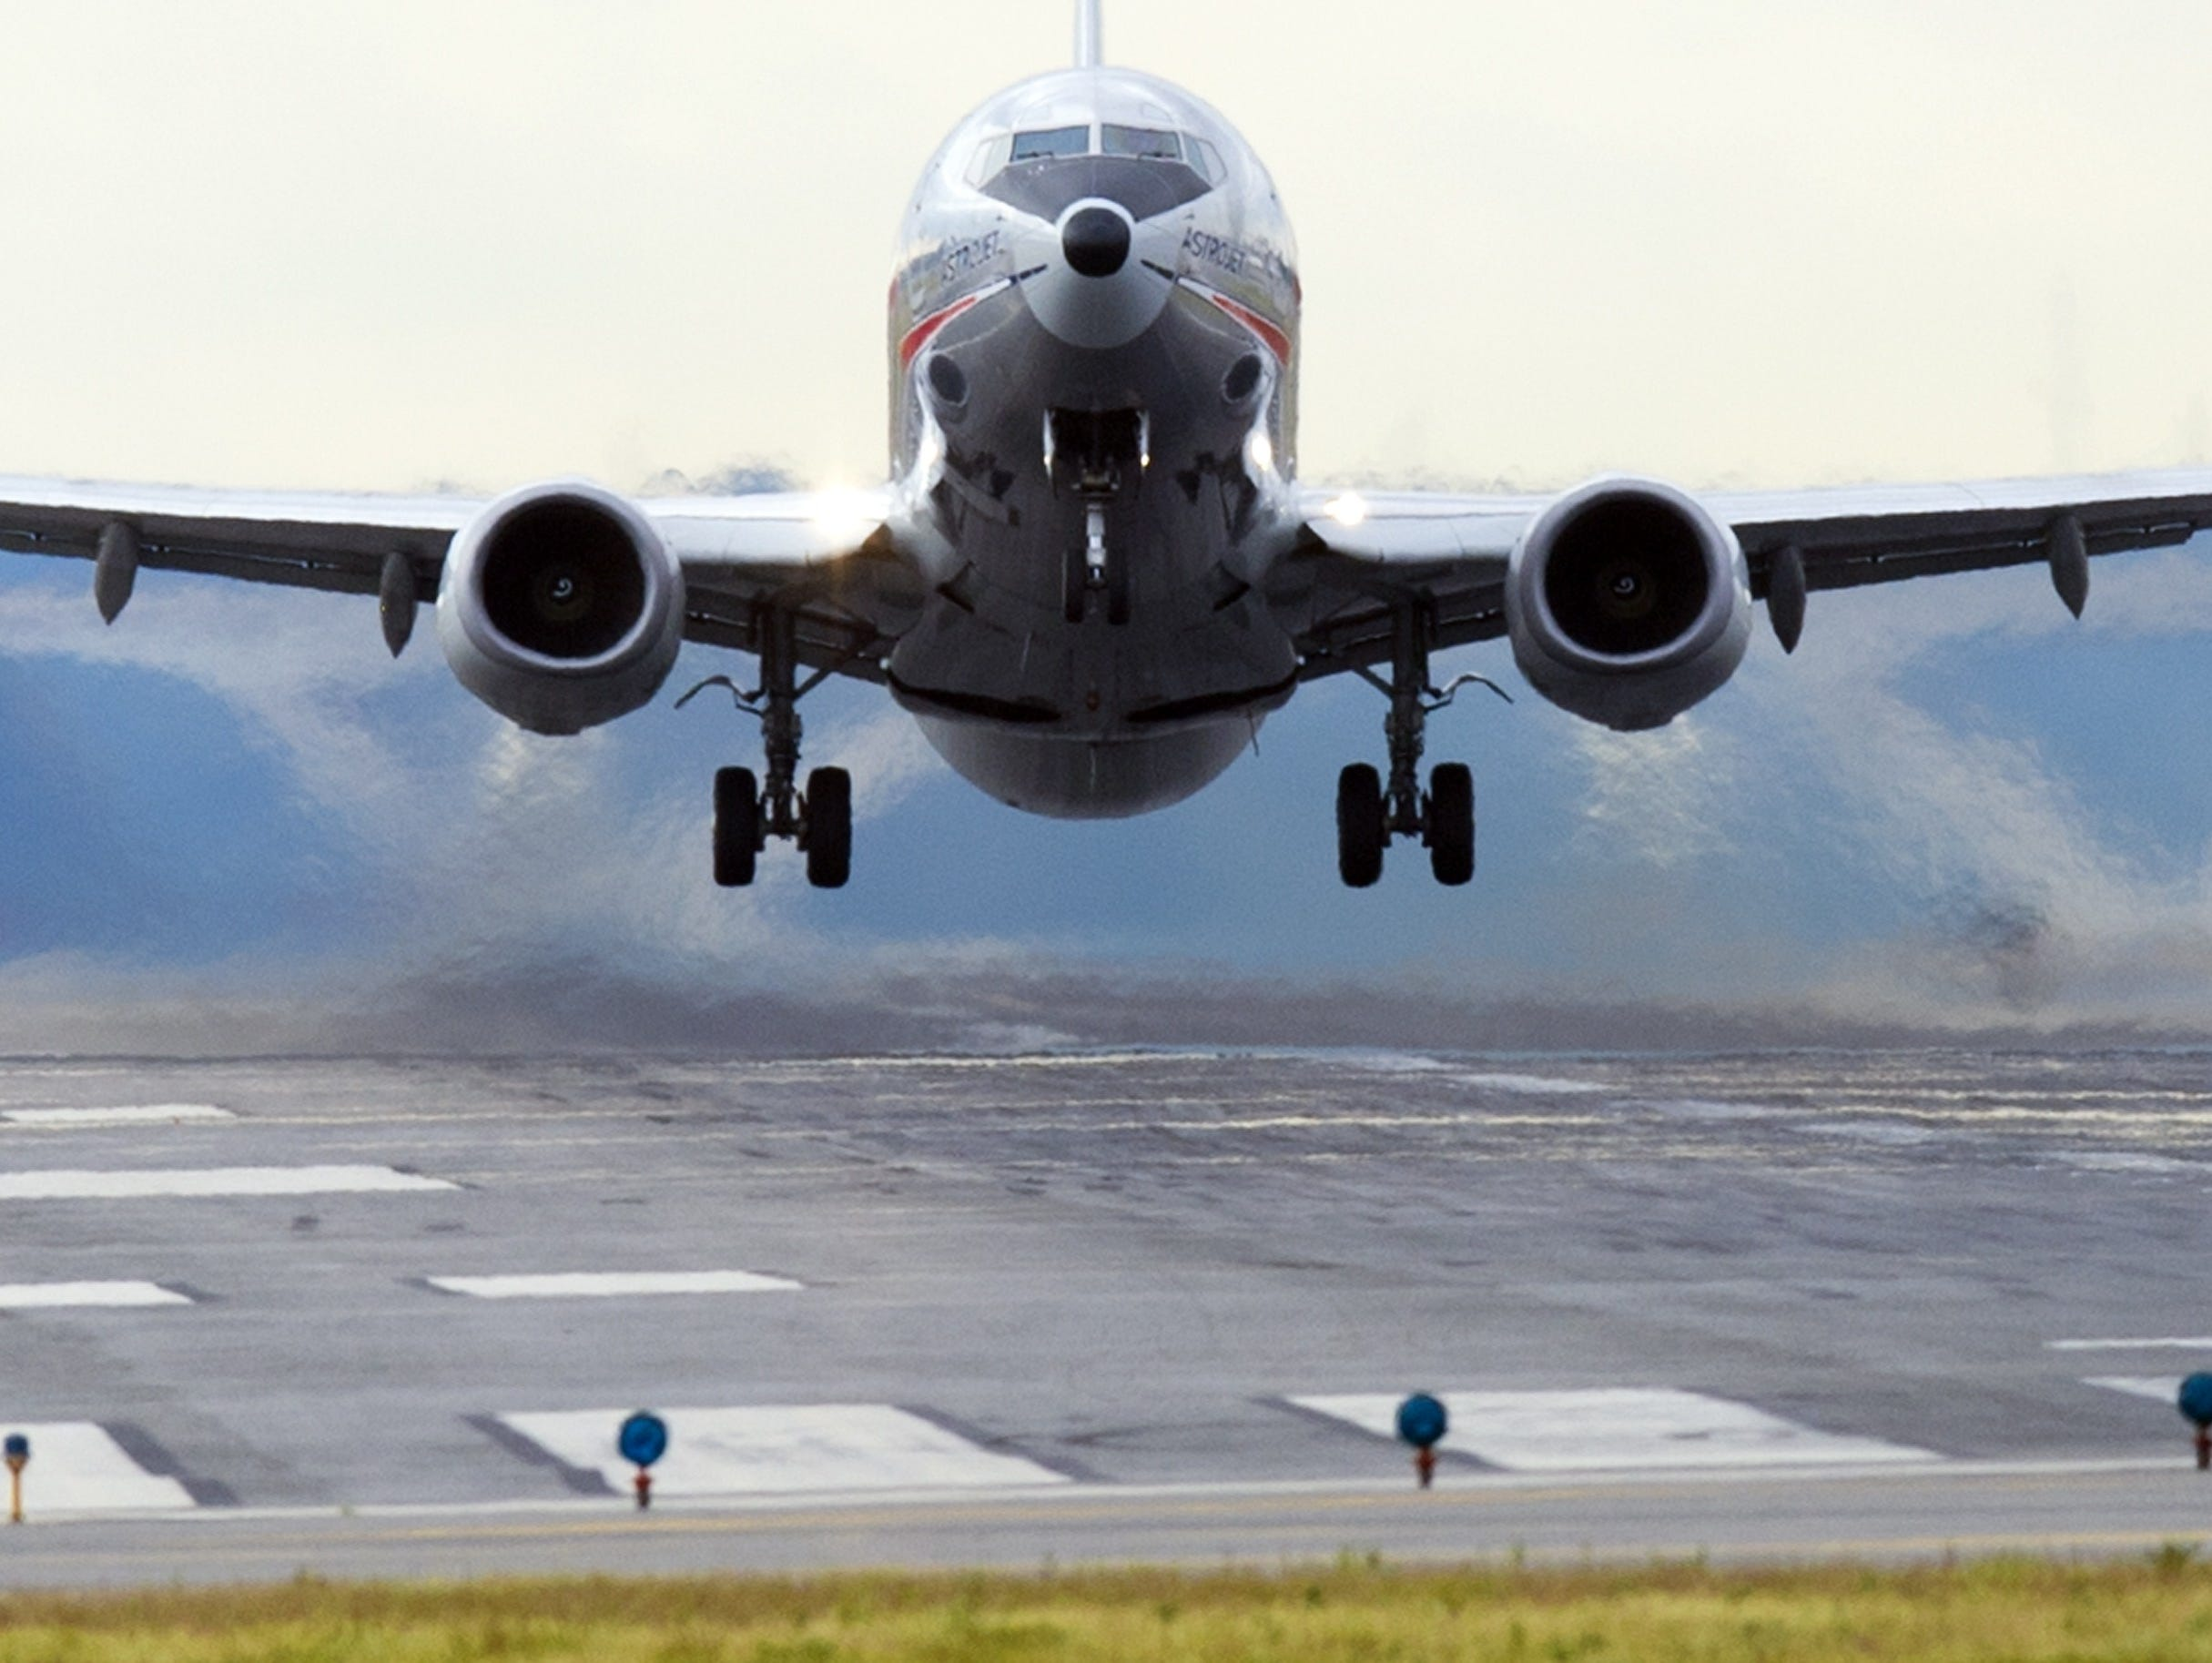 This file photo shows an American Airlines Boeing 737 airplane as it takes off from a runway at Ronald Reagan Washington National Airport in Arlington, Va.